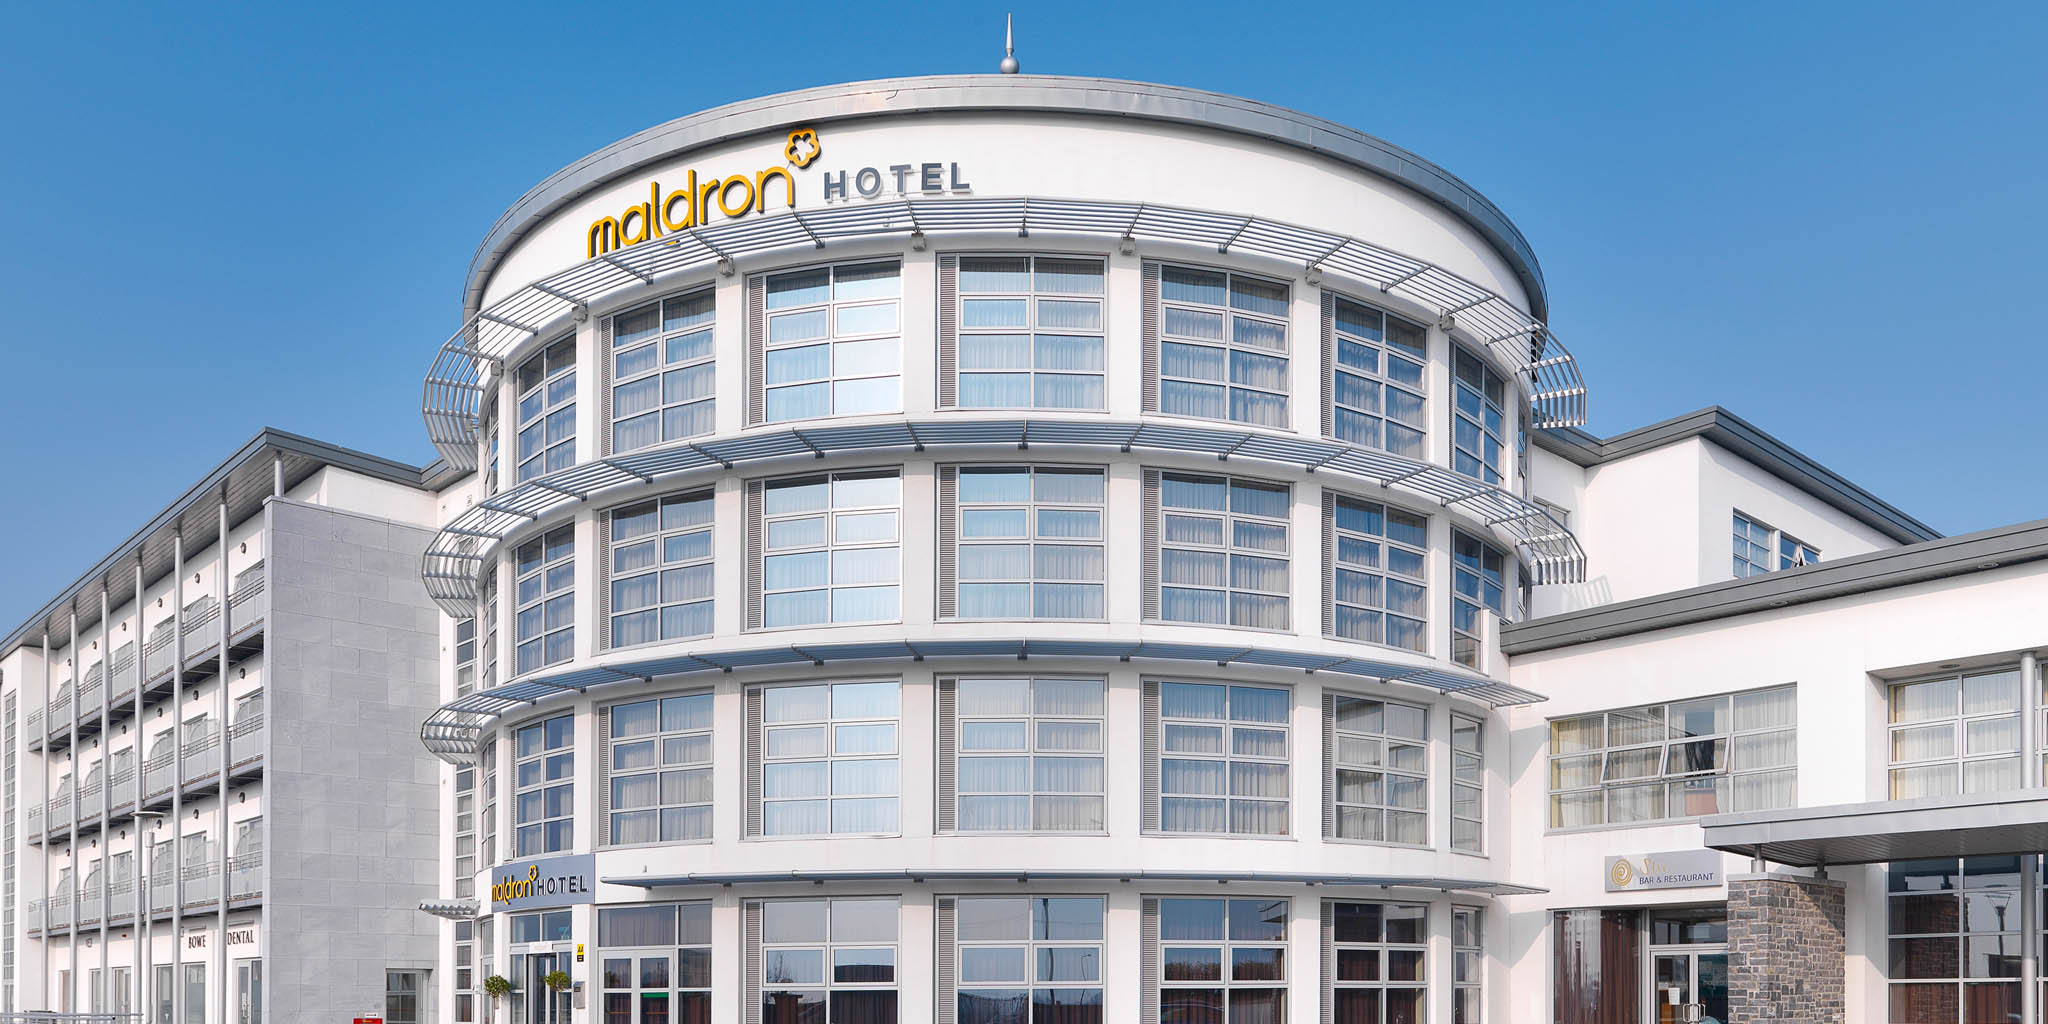 The front of the Maldron Hotel in Limerick